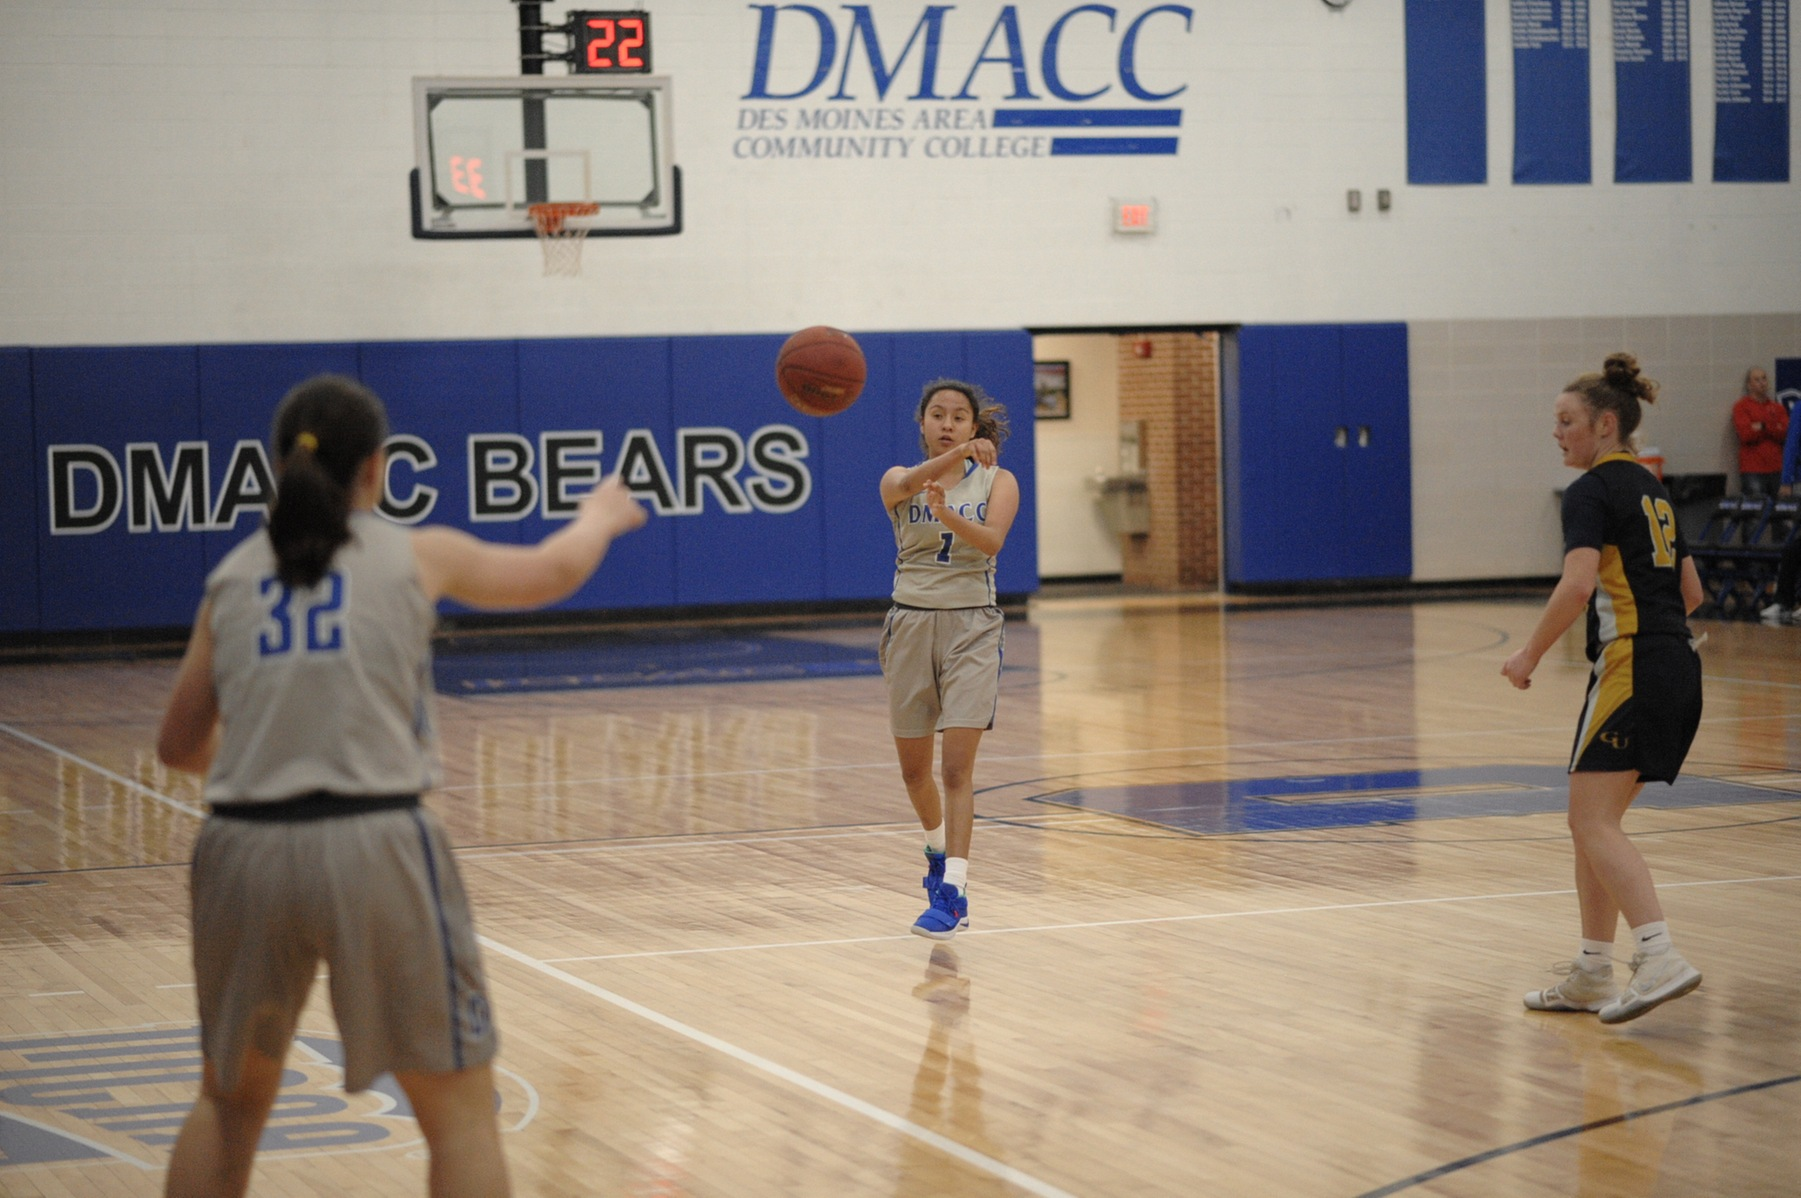 DMACC women's basketball team falls to NENEB, defeats MMUJV in Hawks Classic